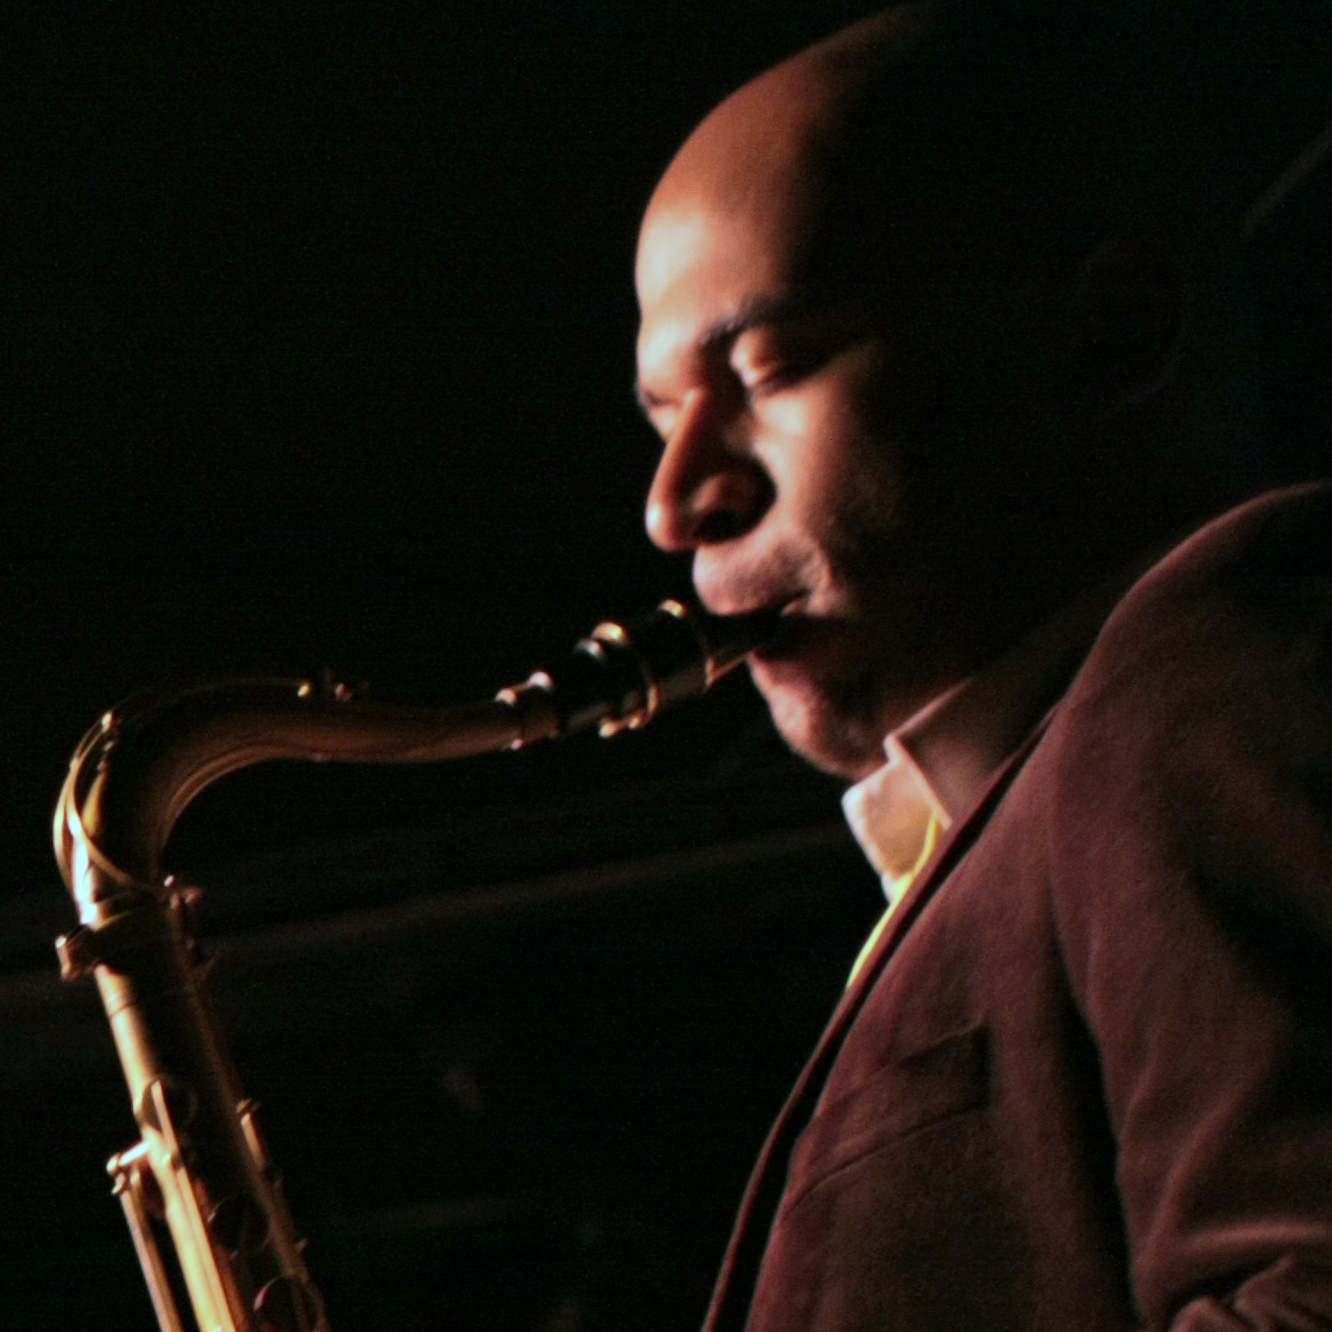 Walter Smith III performs at the Village Vanguard in New York.